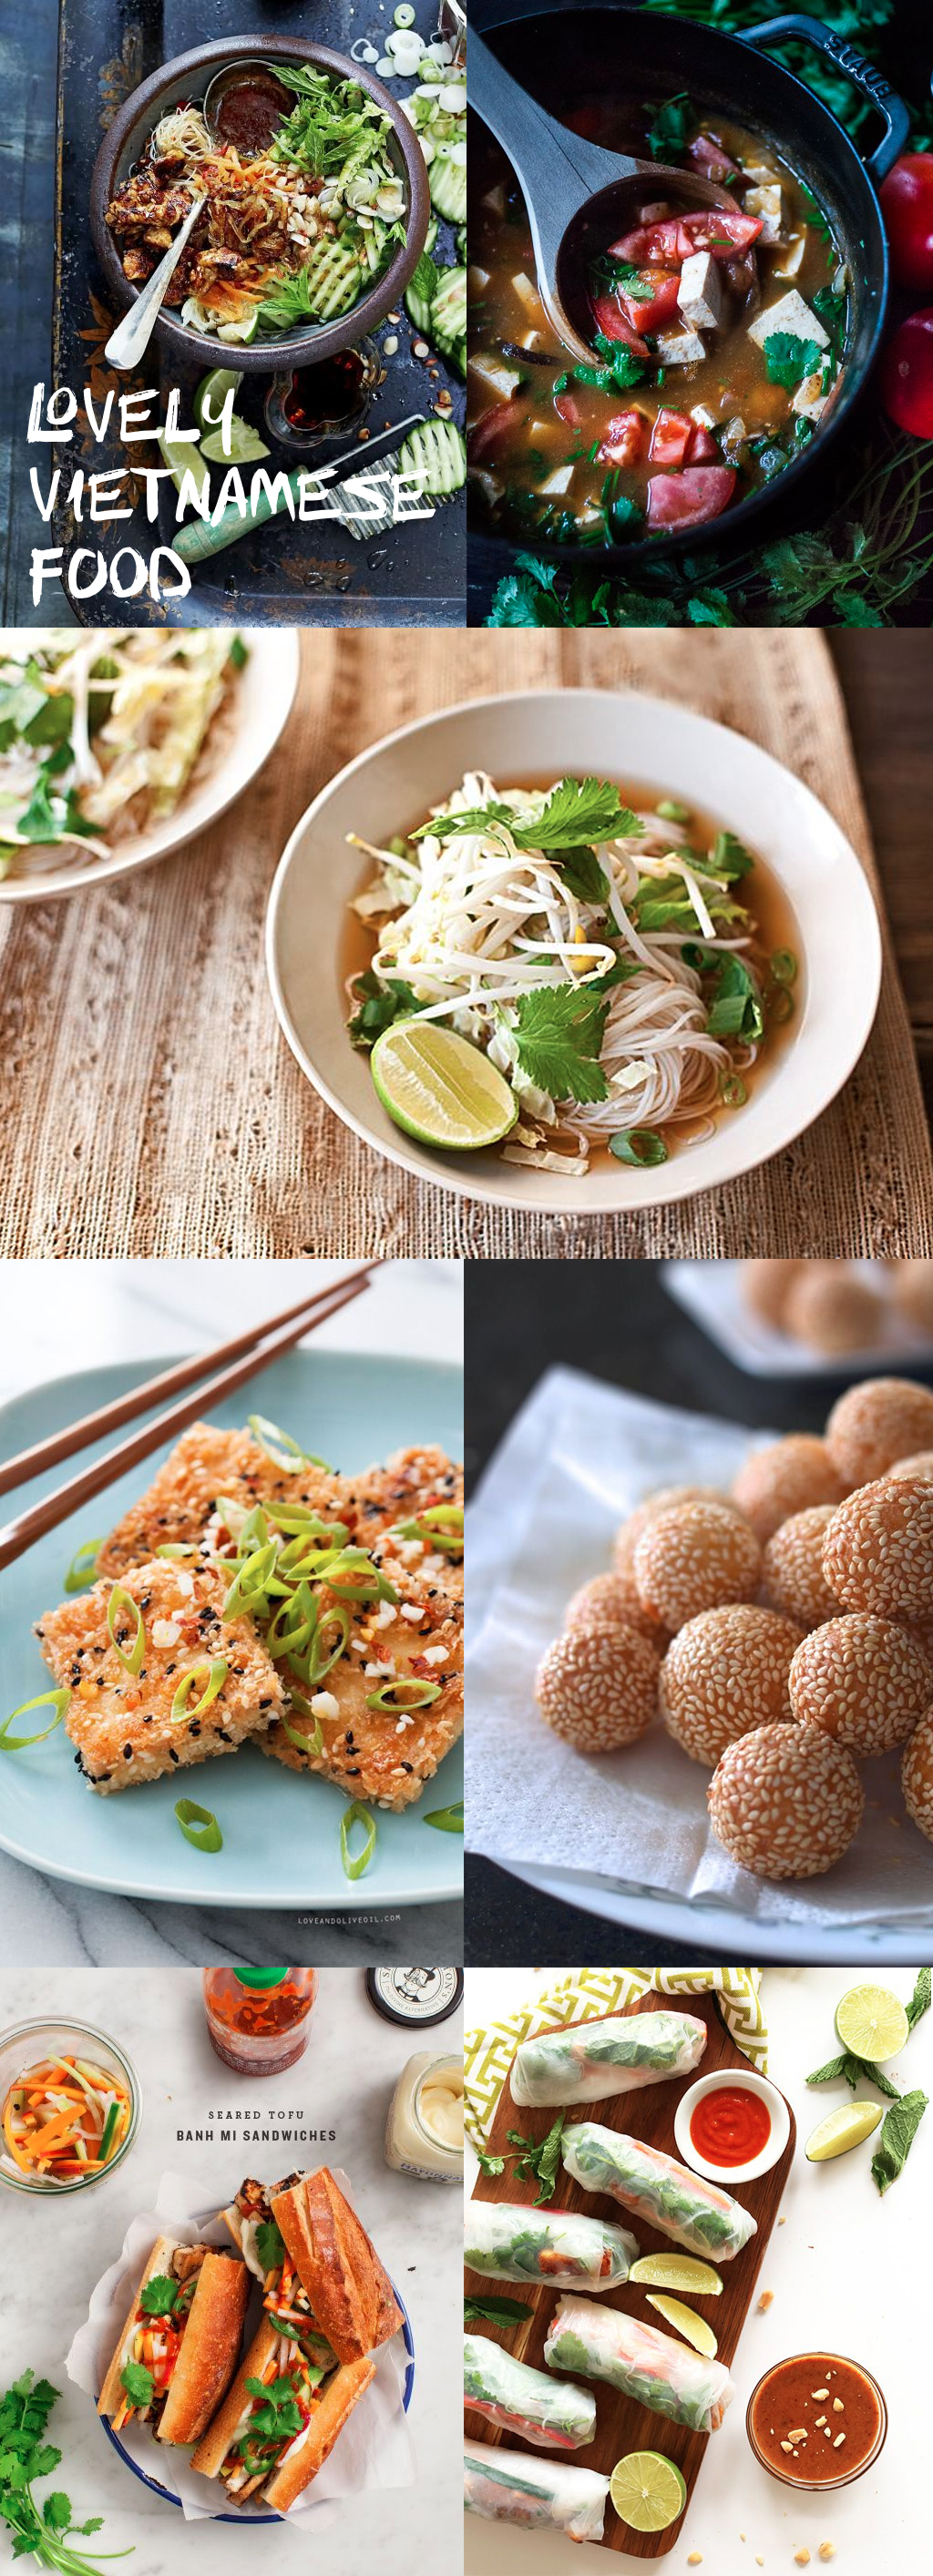 Vietnamese Food inspiration